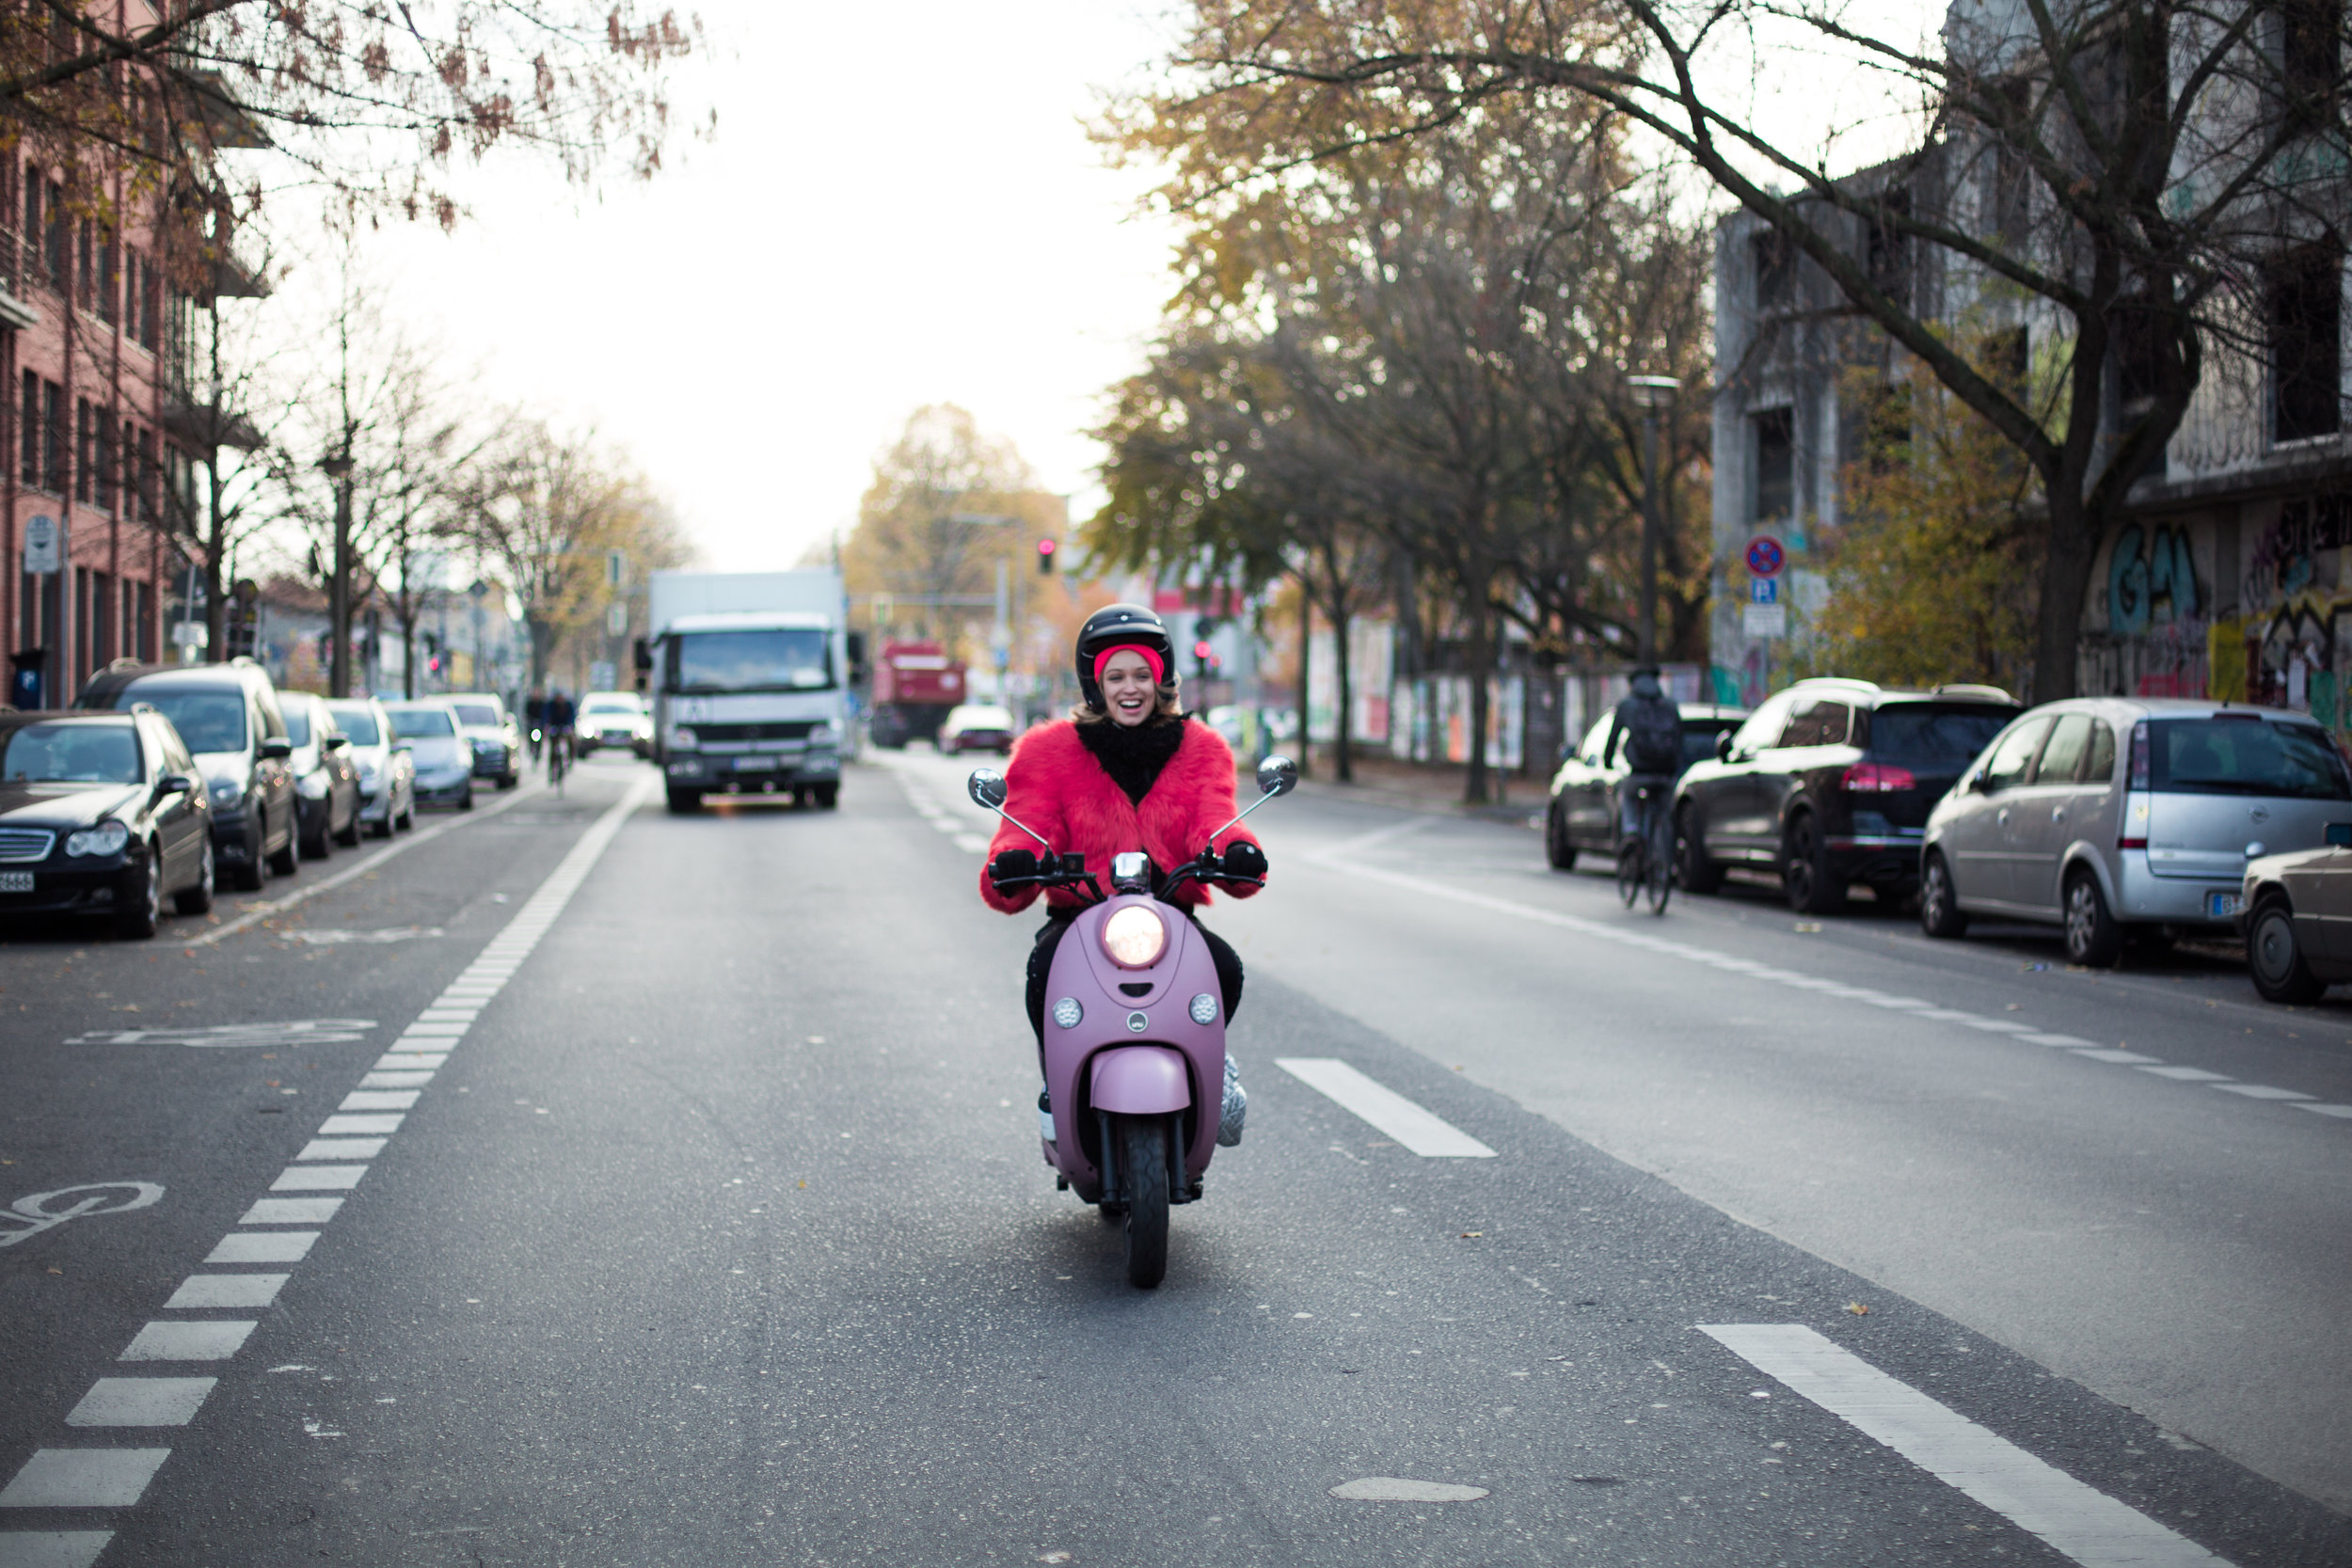 """""""I have a very varied daily routine, so my scooter allows me to get from A to B quickly and flexibly, without waiting unnecessarily long."""""""